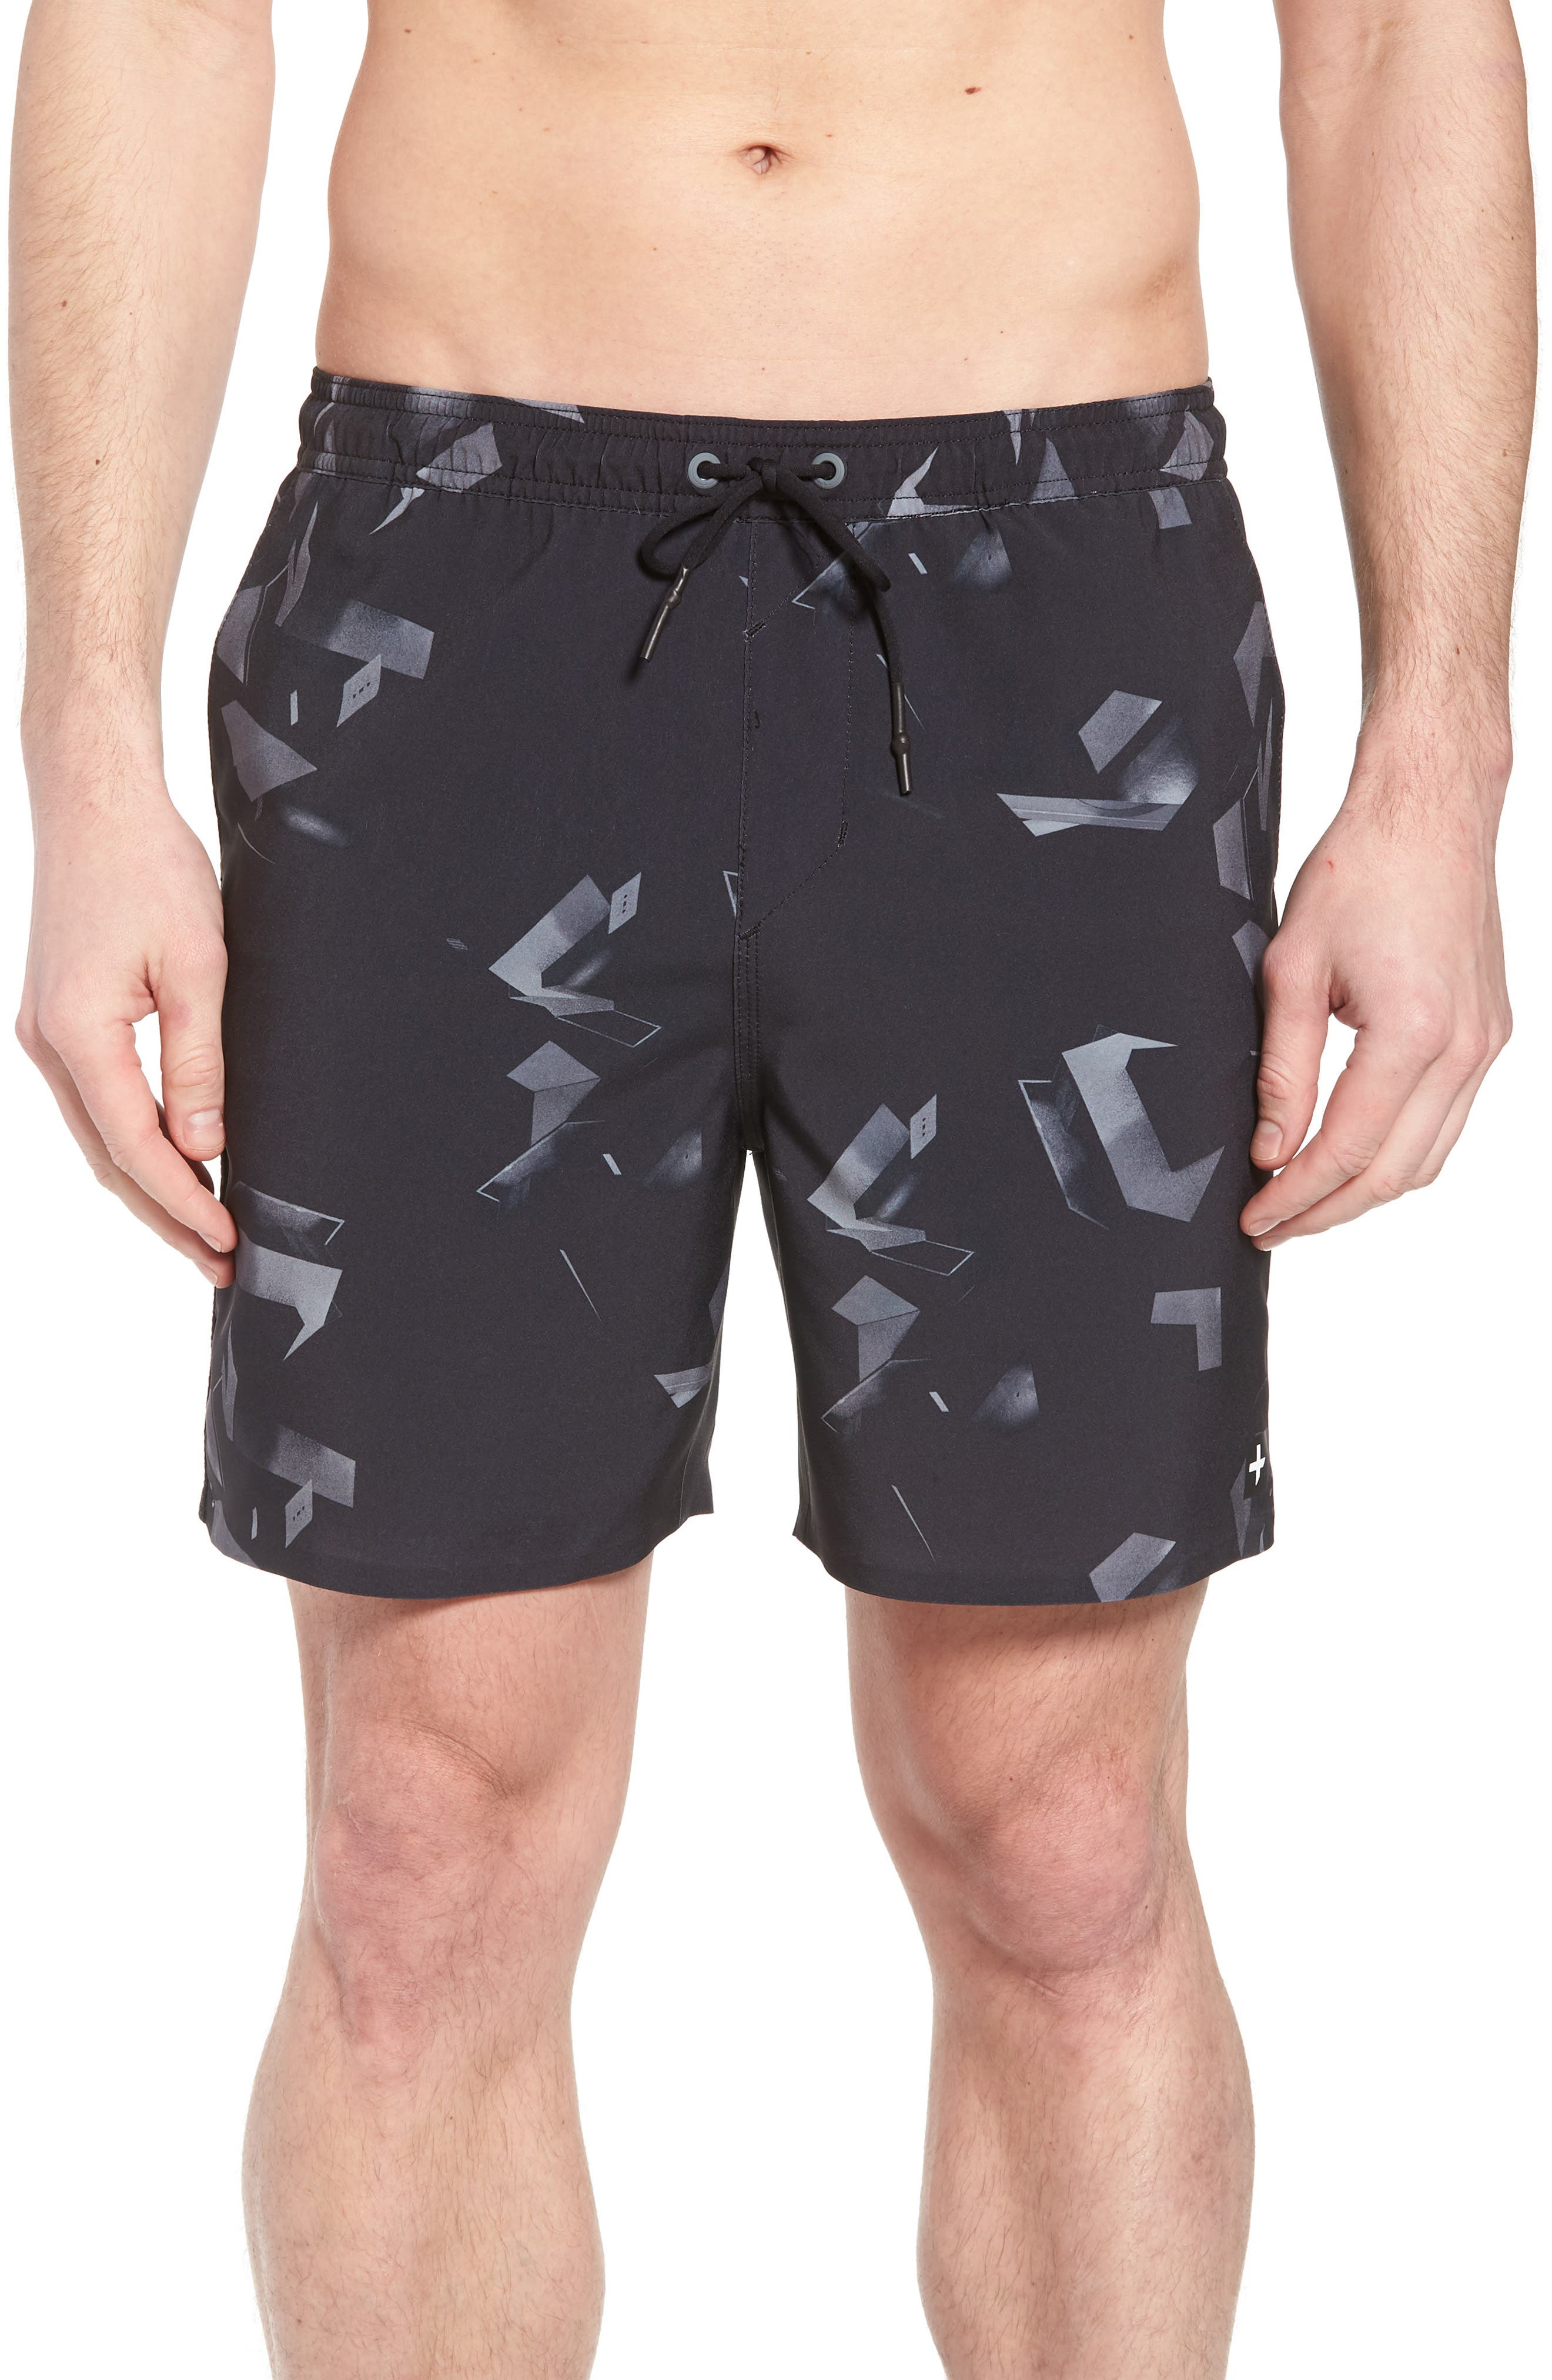 Desmond Swim Trunks,                             Main thumbnail 1, color,                             001